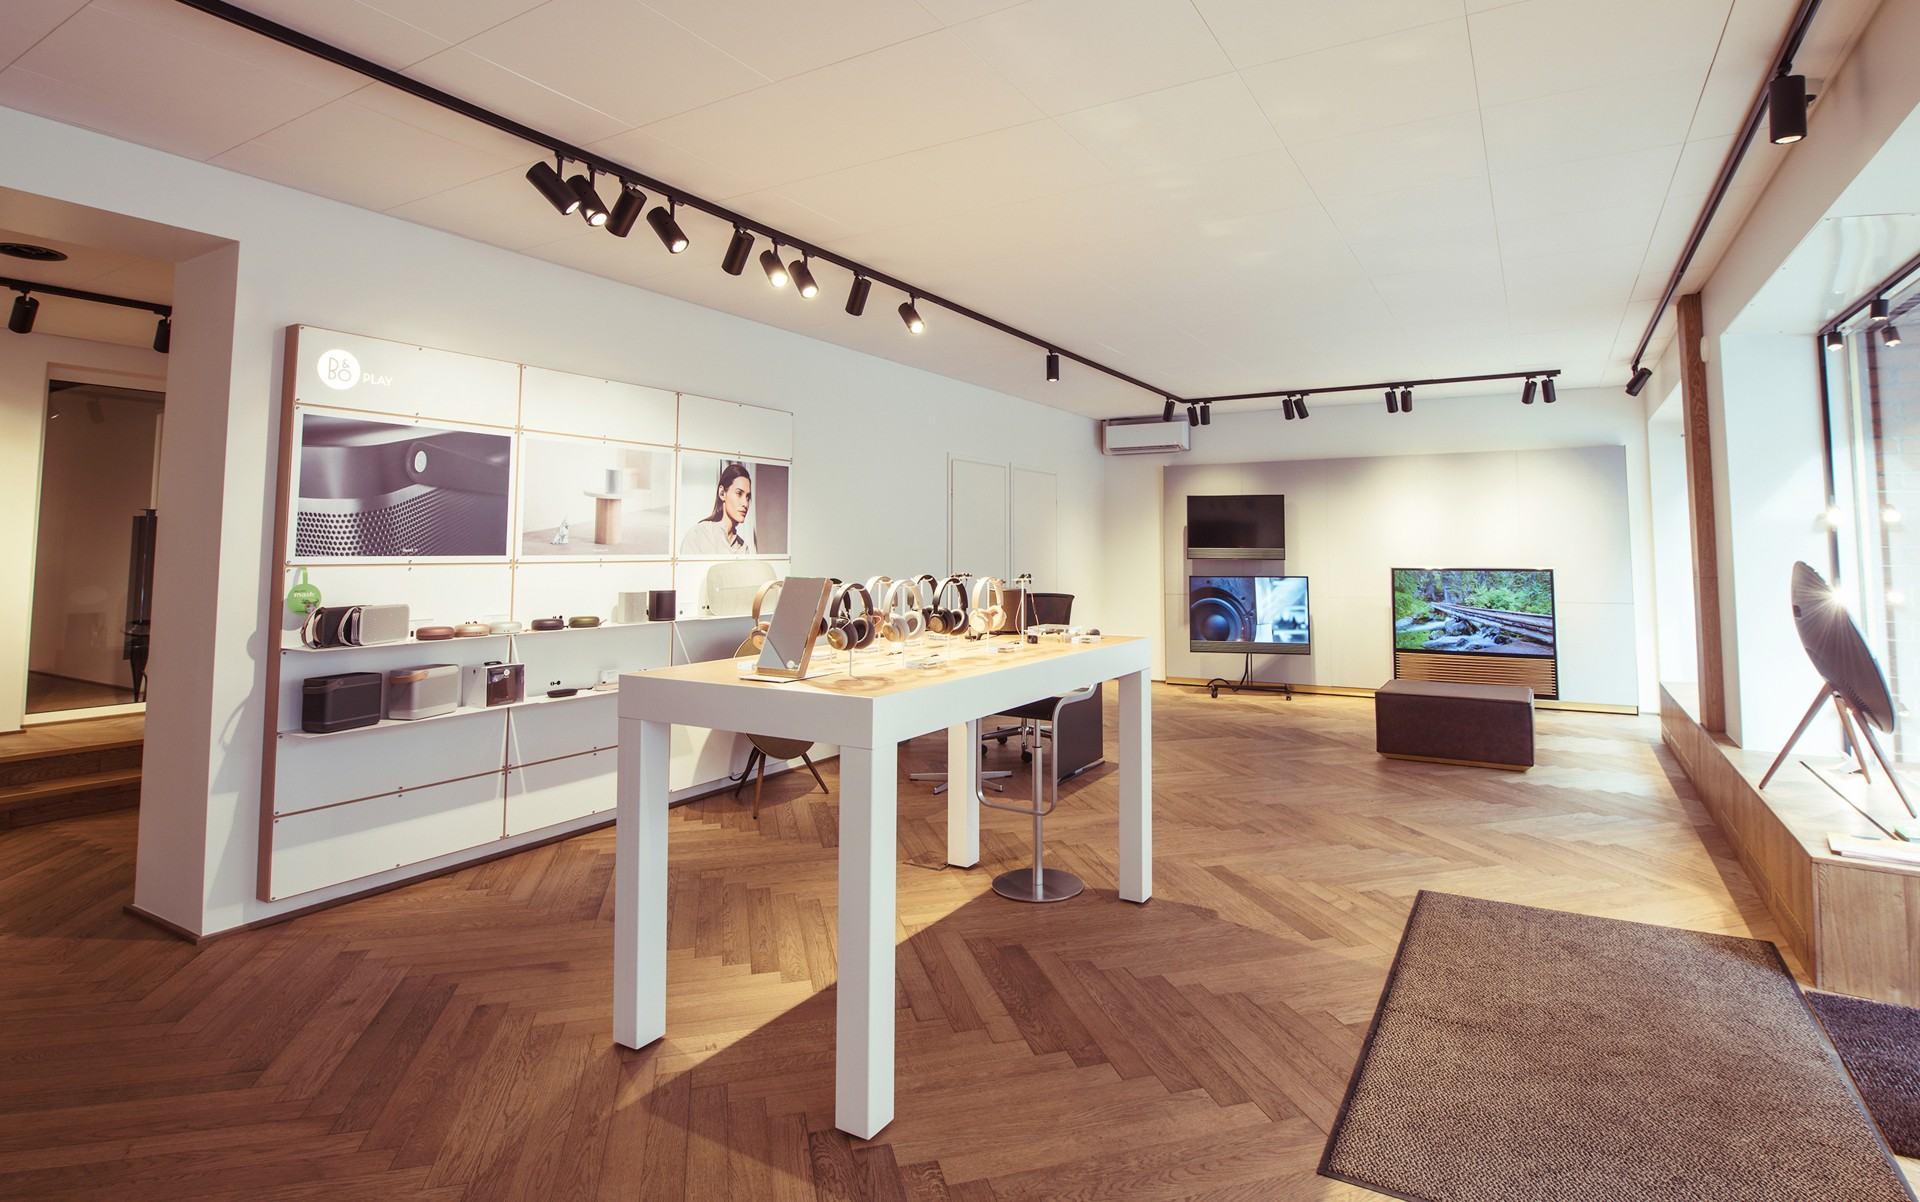 The M3 Spot's precision beam spreads with tight field angles and minimal spill allows Bang & Olufsen to focus on their products and make them shine.  – Joonas Puhakka (Northern Images)